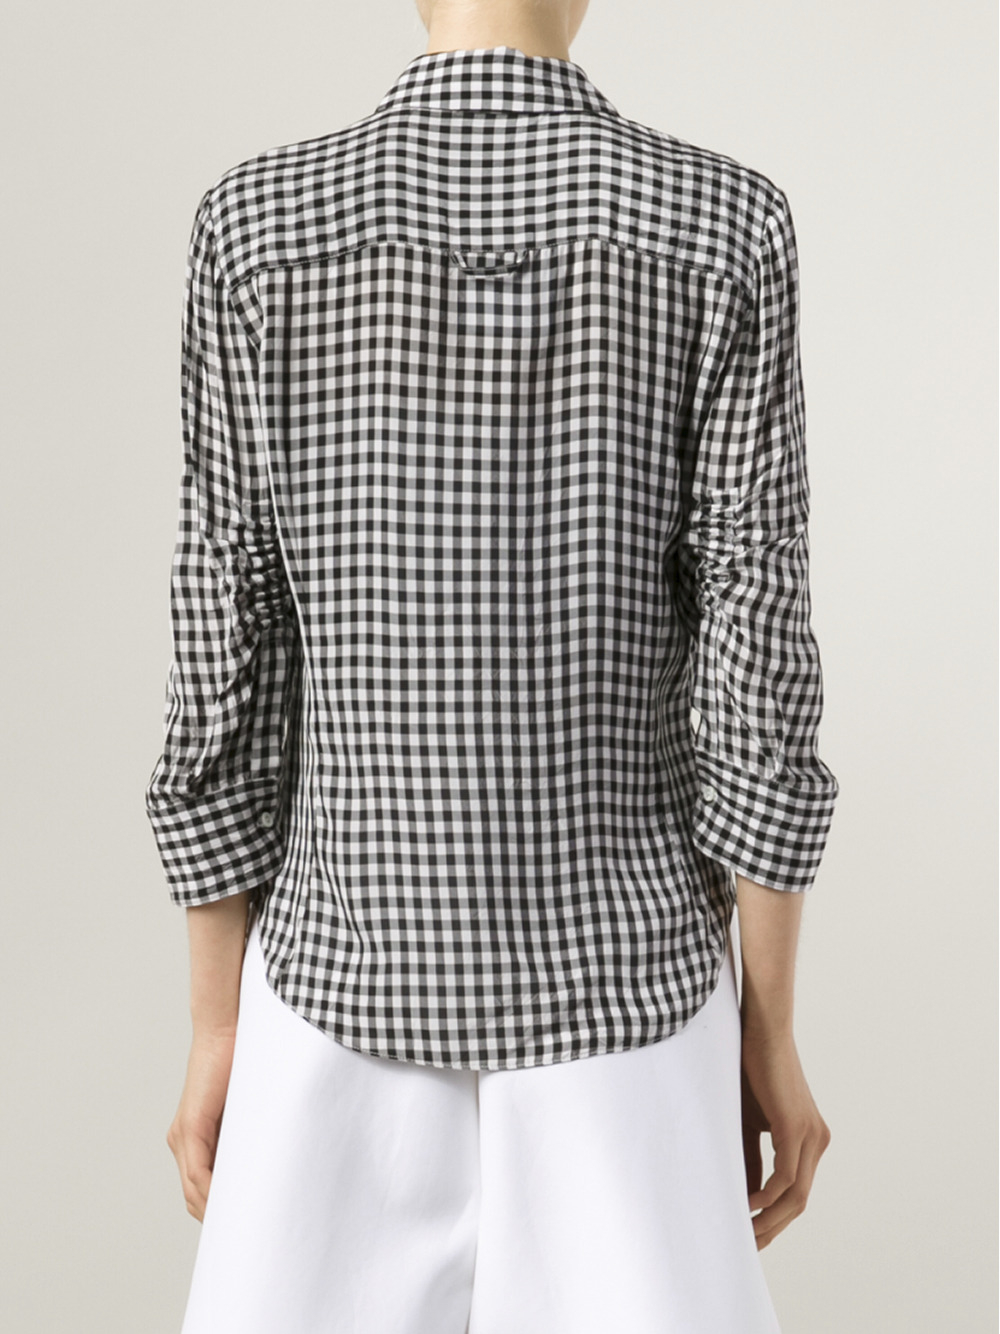 Find black gingham dress shirt at ShopStyle. Shop the latest collection of black gingham dress shirt from the most popular stores - all in one place.